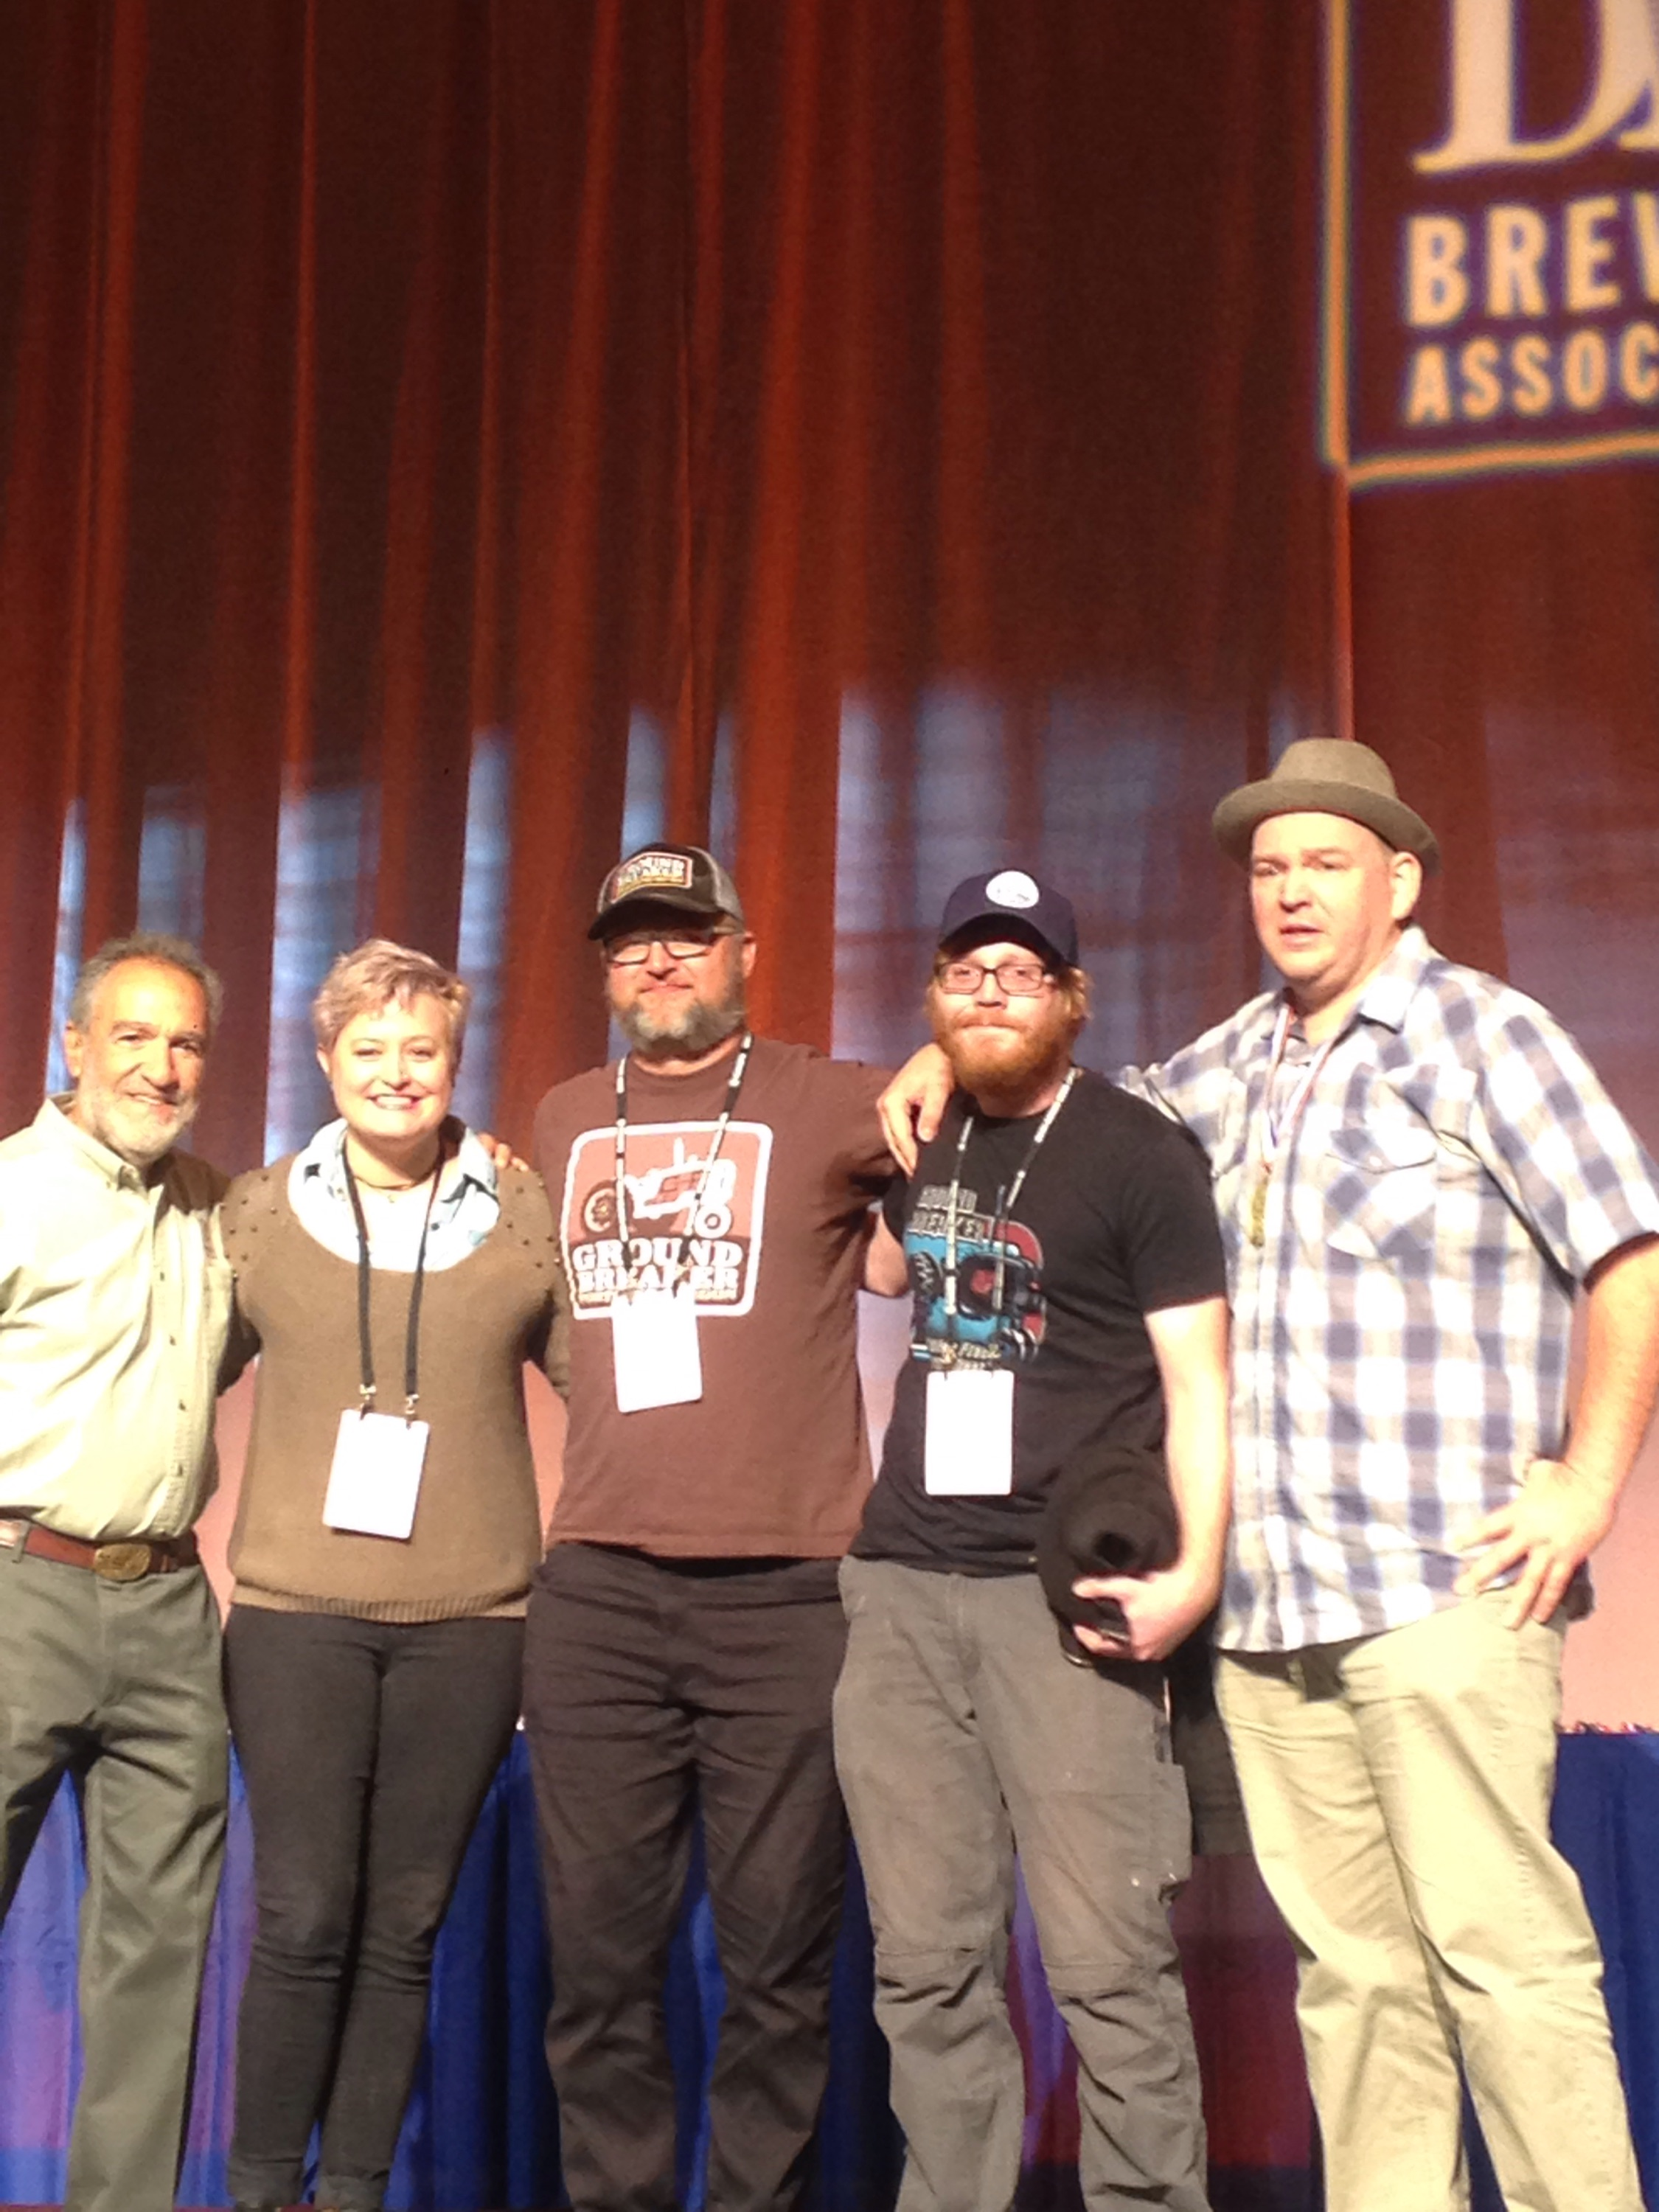 Ground Breaker Brewing accepts the GABF Gold Medal for Gluten-Free Beer from Charlie Papazian. From left to right: Charlie Papazian, Maddy McCarthy (cellarwoman), Paxton Scott (head of sales), Tyler Kueber (head brewer), and James Neumeister (founder).